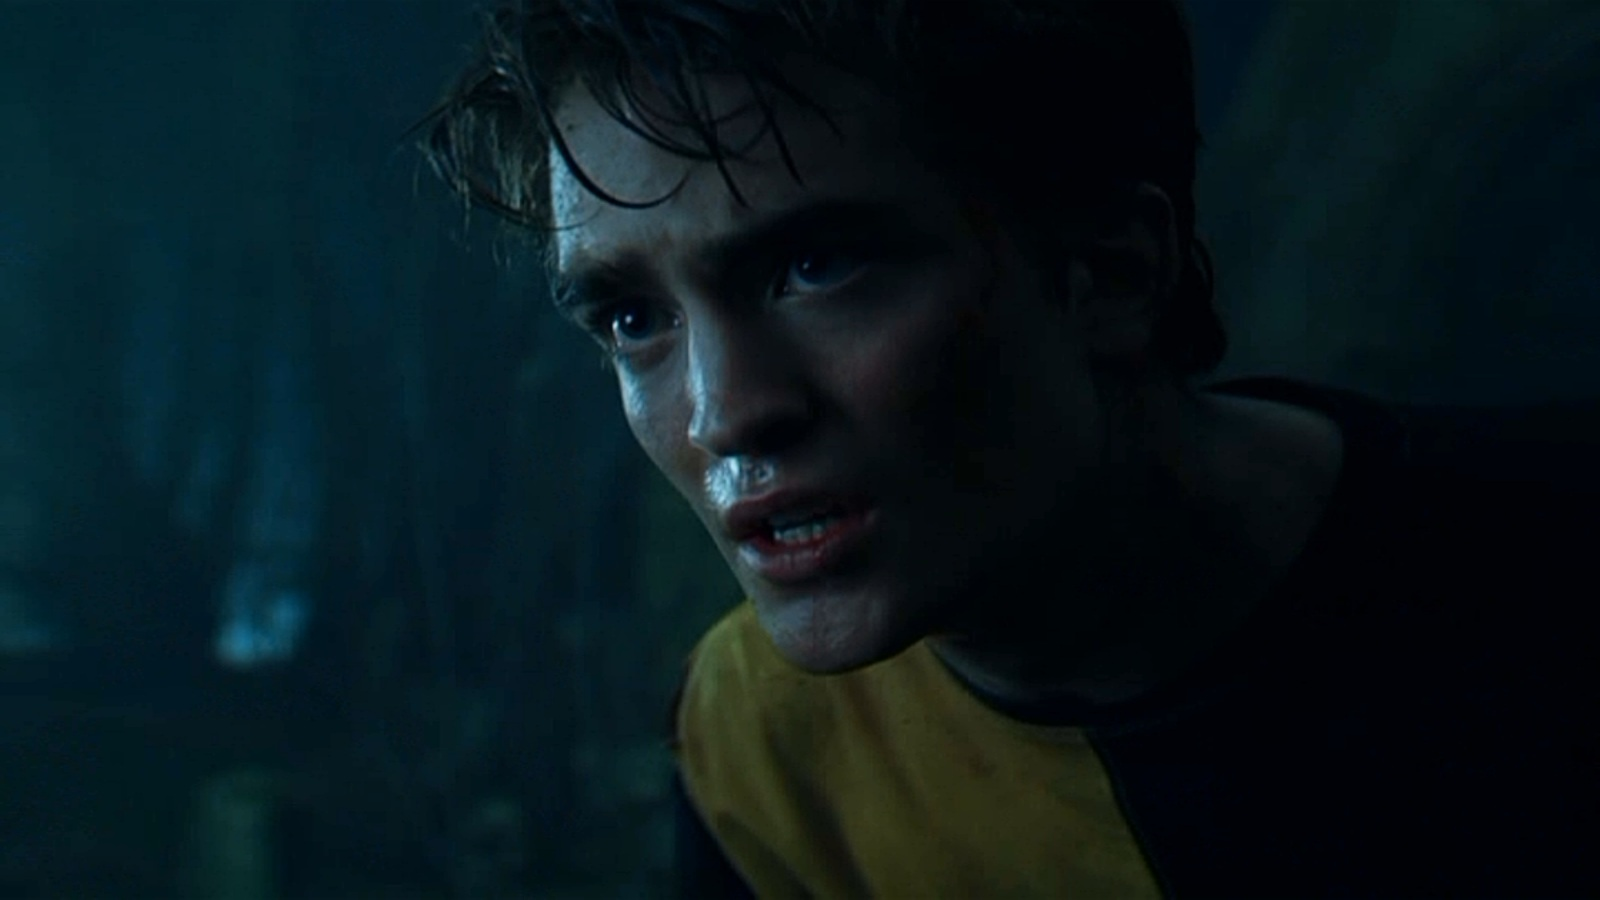 Harry Potter And The Goblet Of Fire Cedric Diggory Death Scene ROBERTPATTINSON U.S.: ...